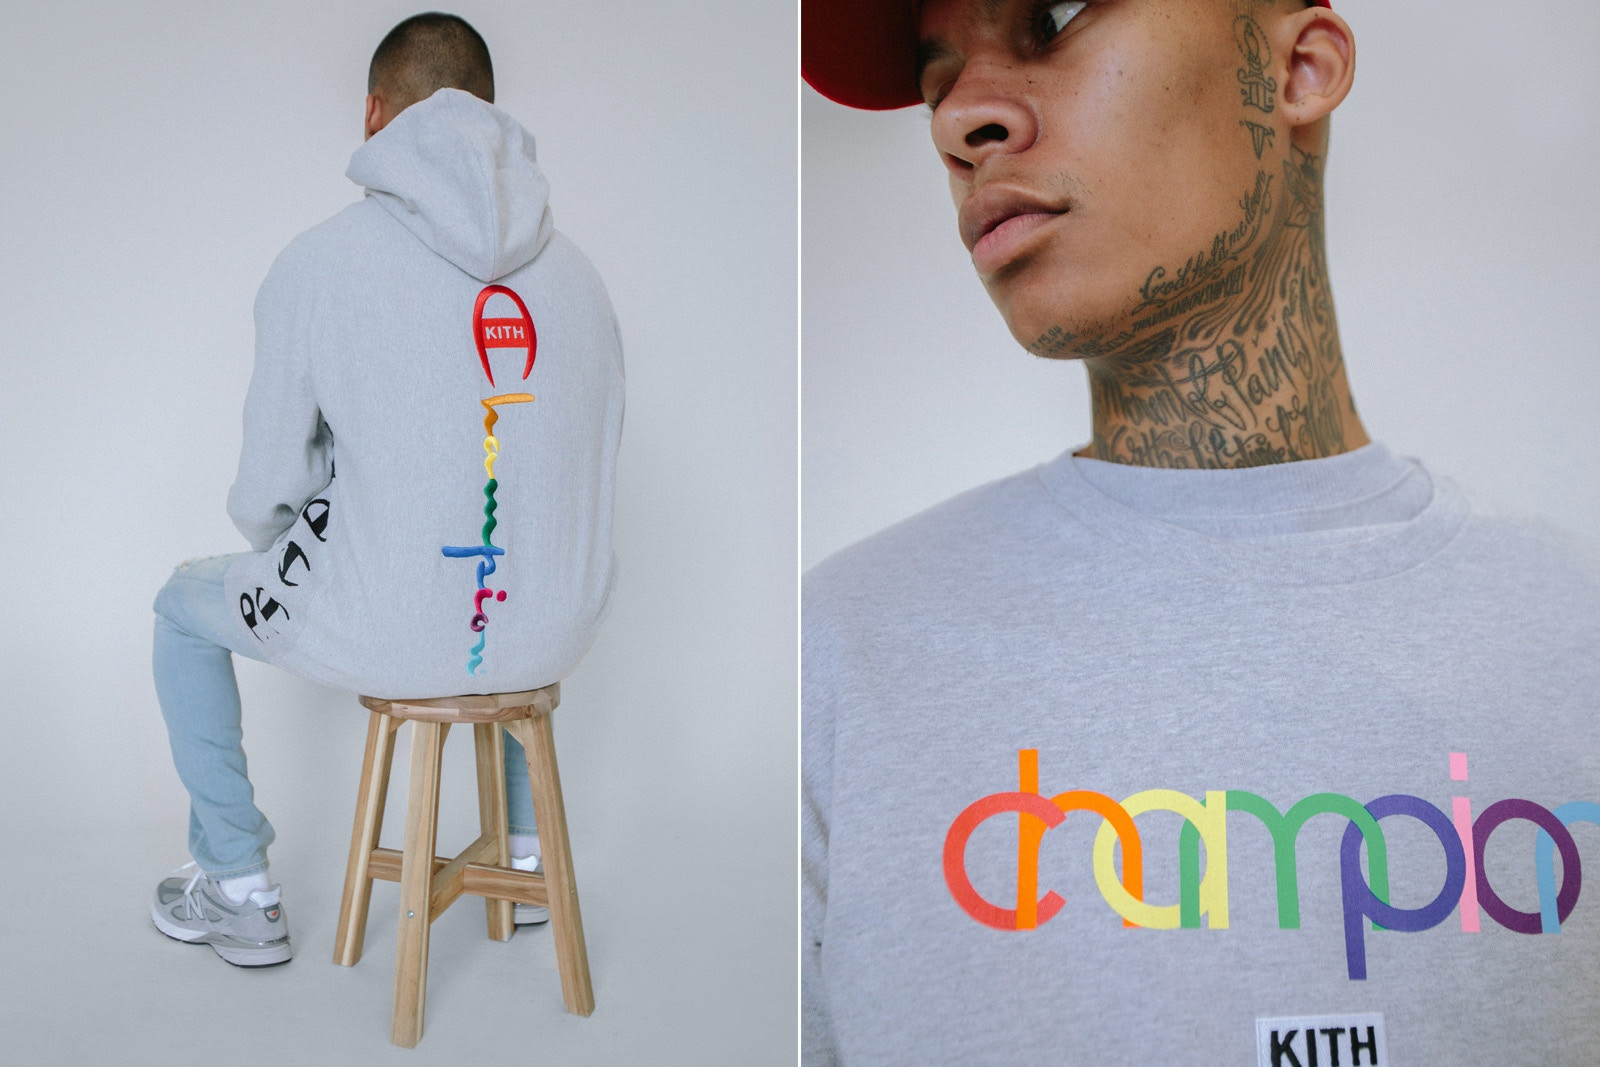 KITH rielabora il logo di Champion per una nuova capsule collection | Collater.al 4